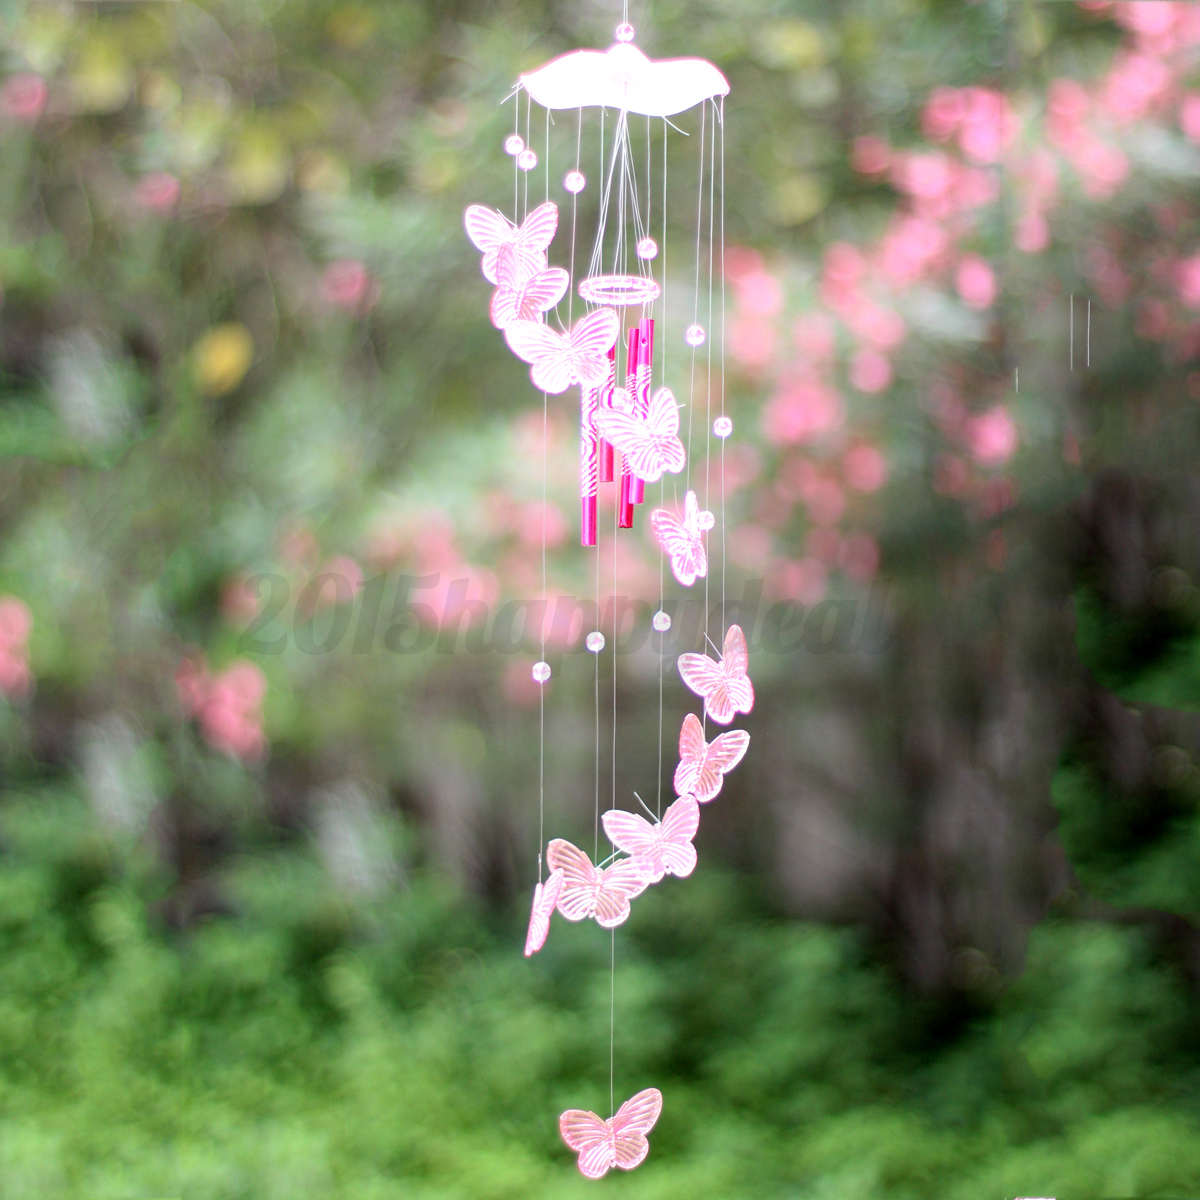 New creative butterfly mobile wind chime bell garden for Hanging garden ornaments